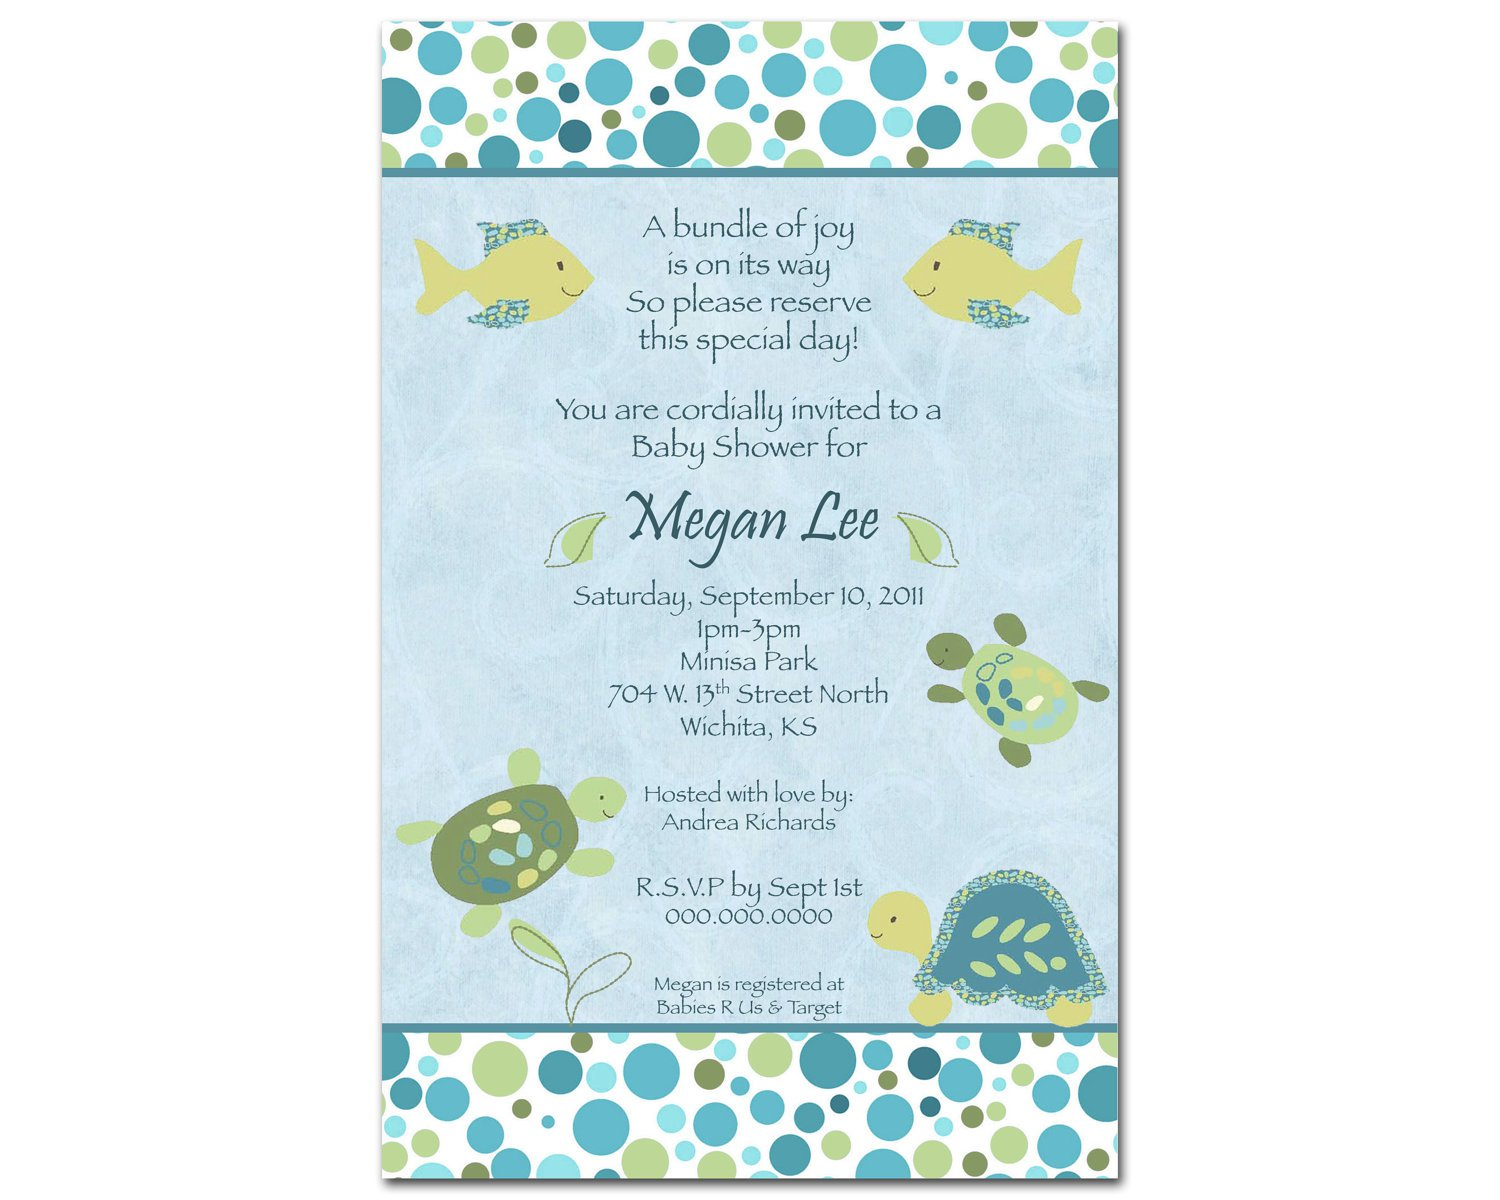 Office Wedding Shower Invitation Wording 1500 X 1200